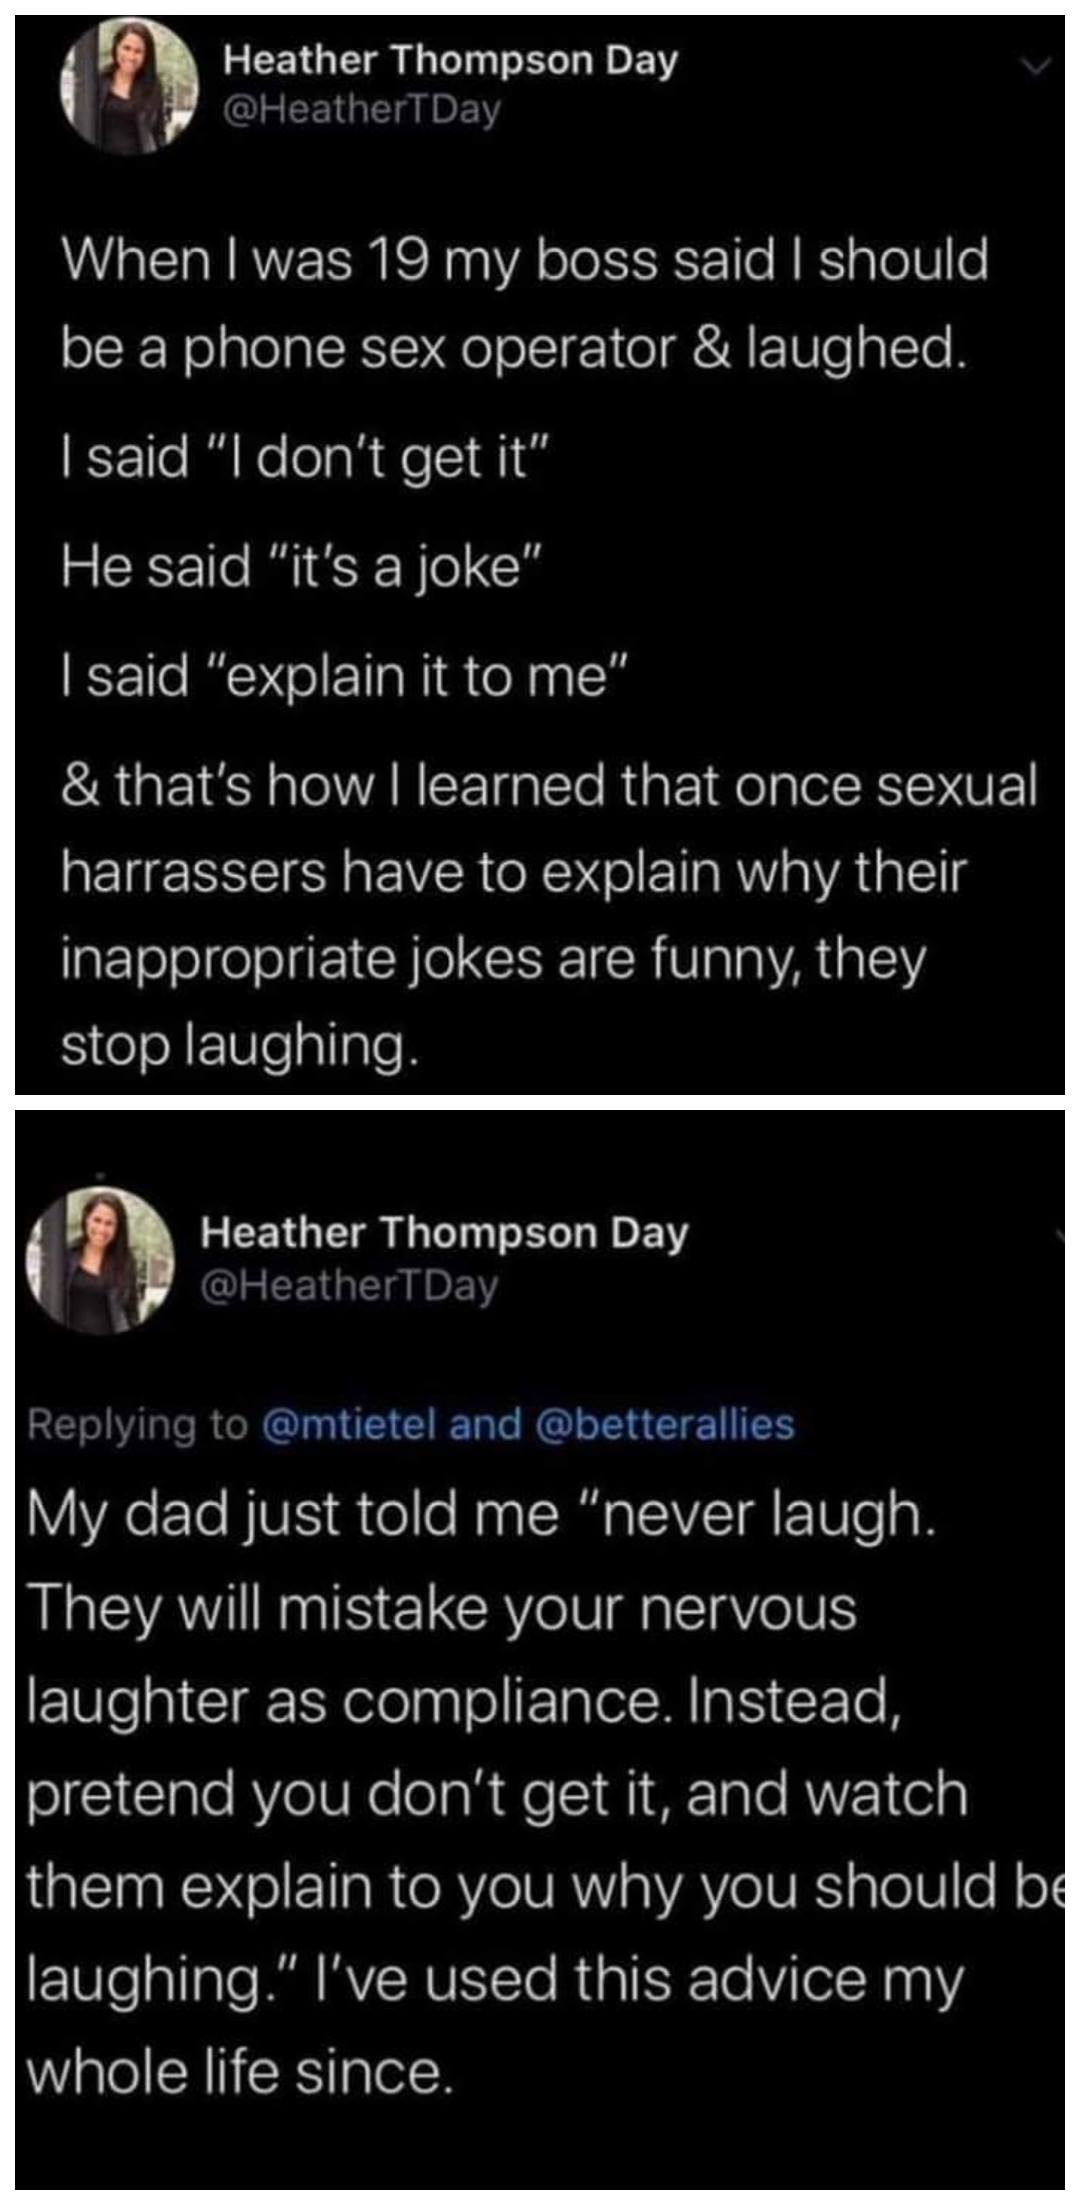 How To Deal With Inappropriate Sexual Jokes